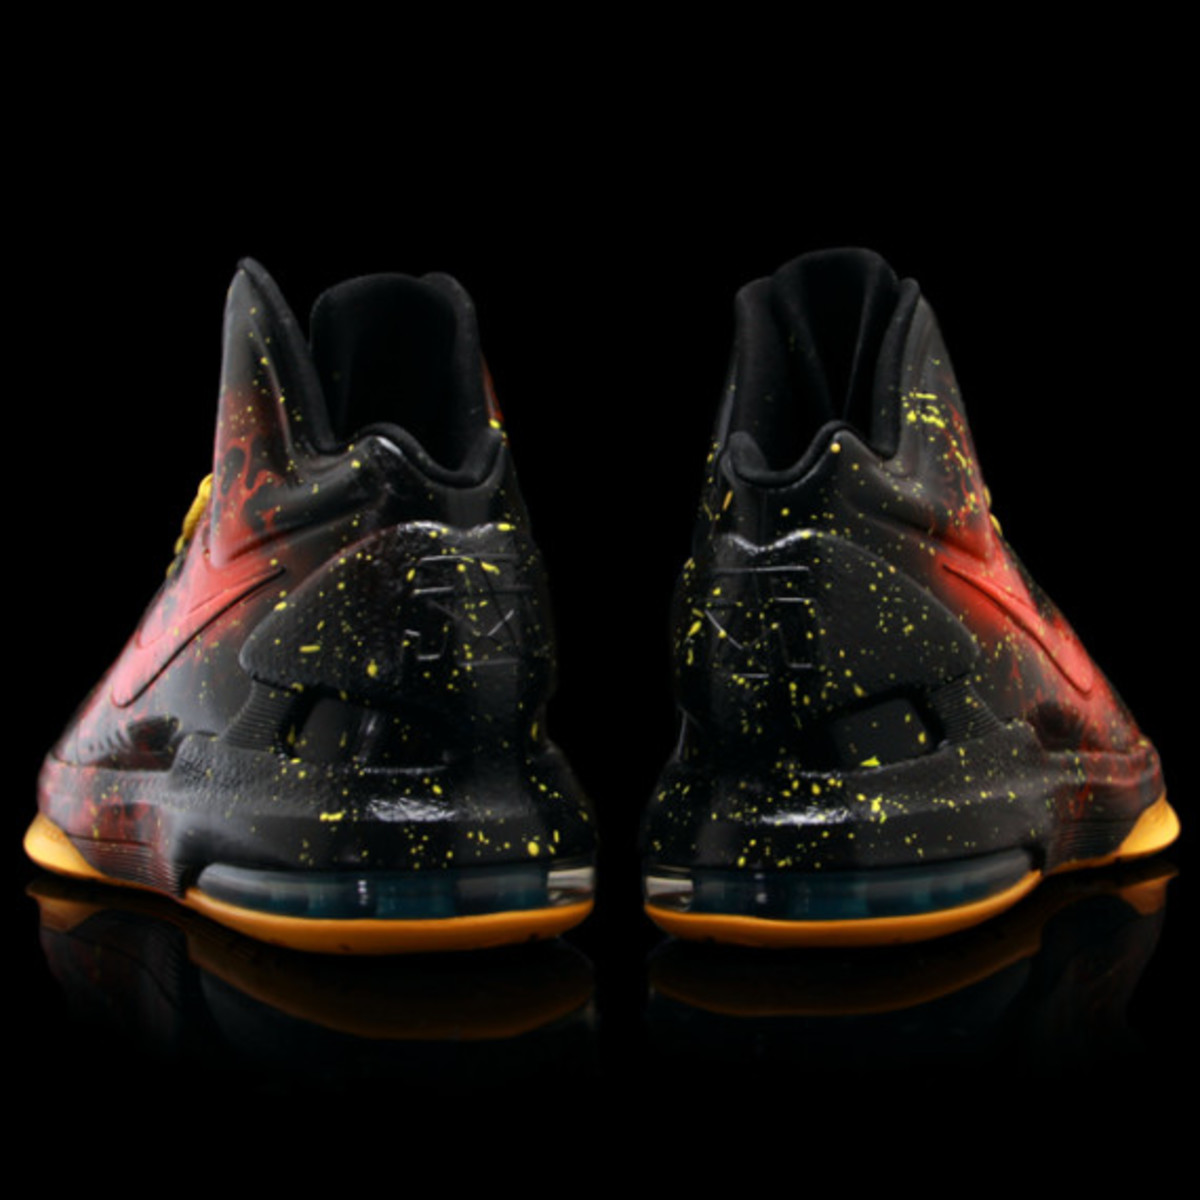 sneaker-con-houston-kickasso-kd-5-heat-advisory-03